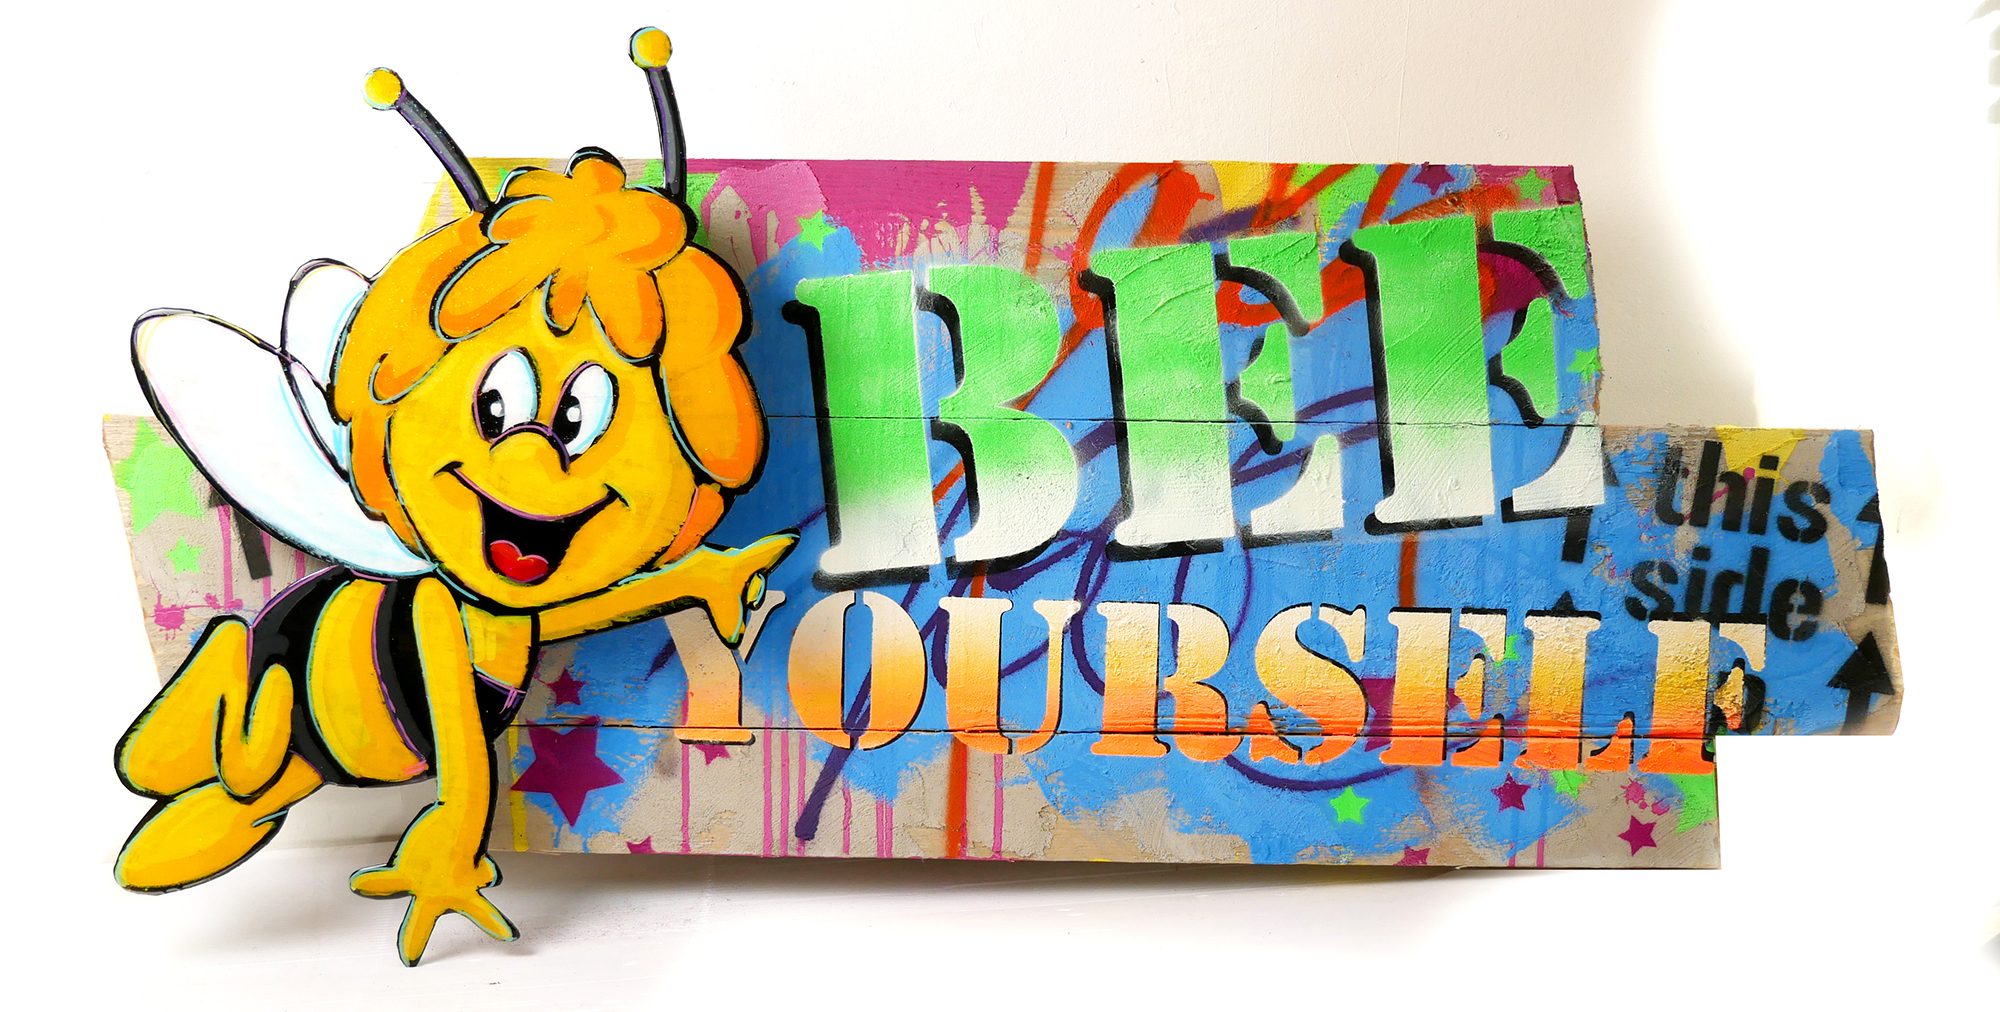 Tom Boston - Bee yourself , 8022-006-239